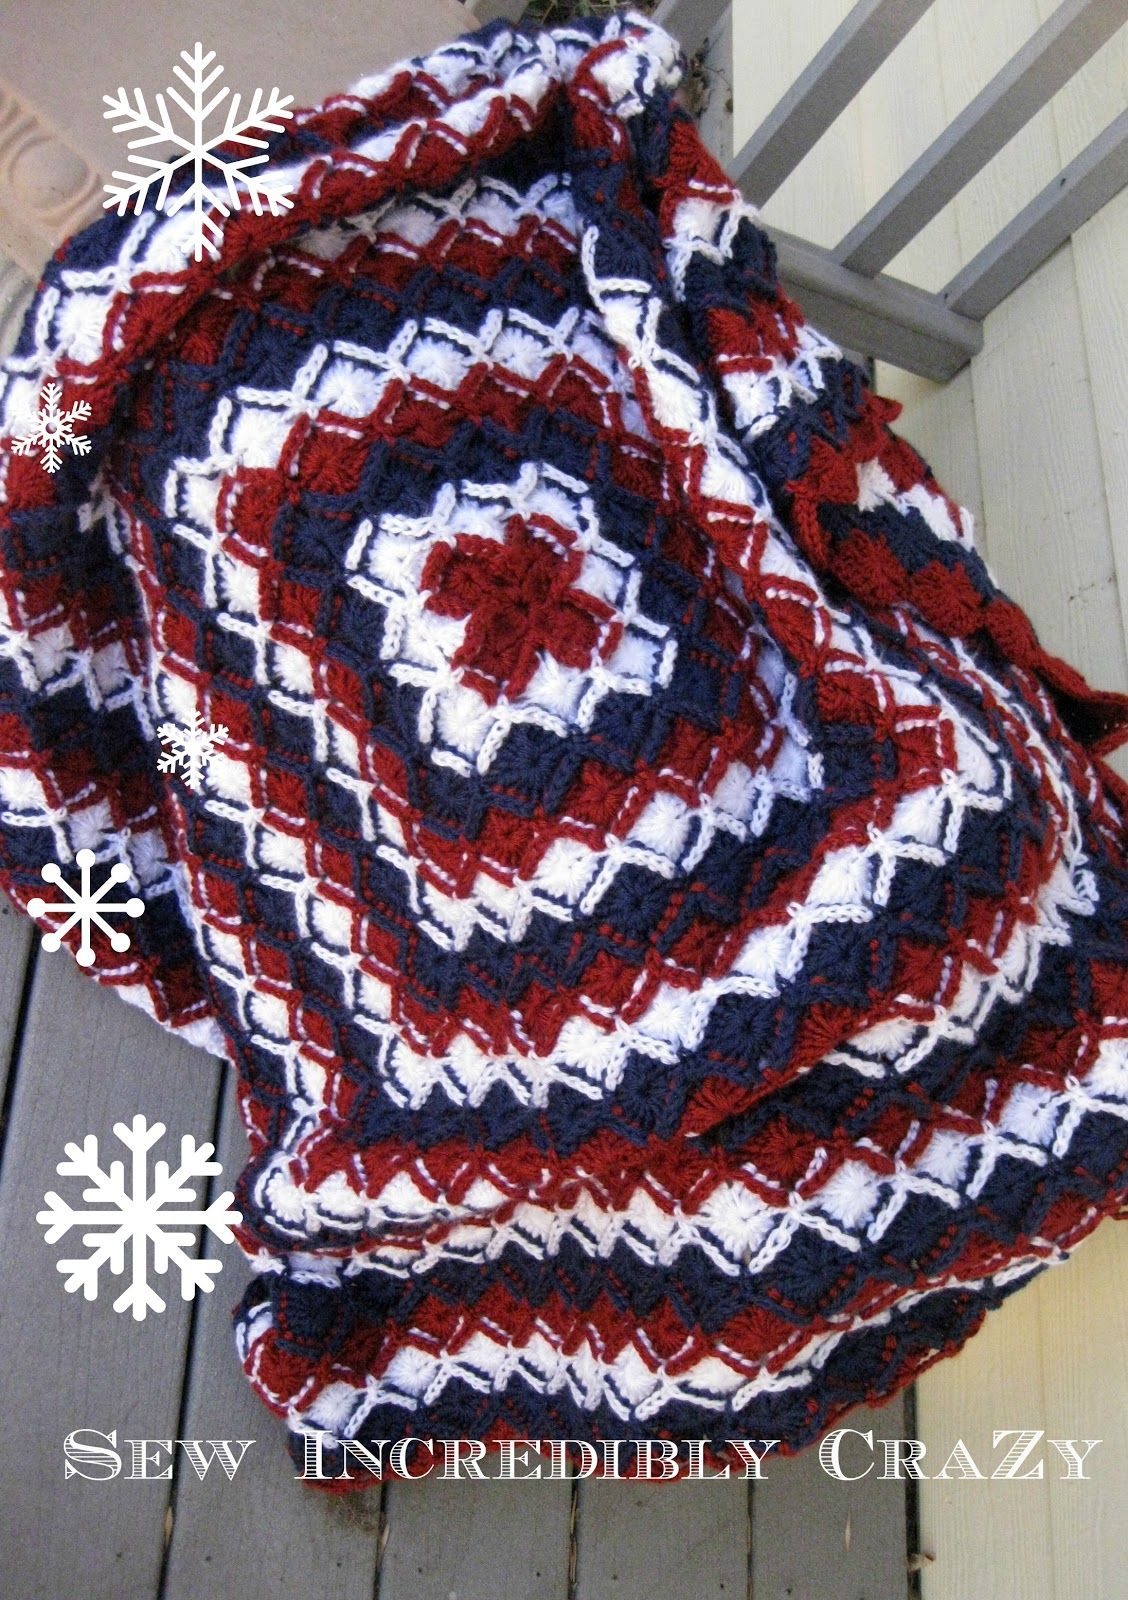 Sew Incredibly Crazy: A distraction........Bavarian Crochet ...